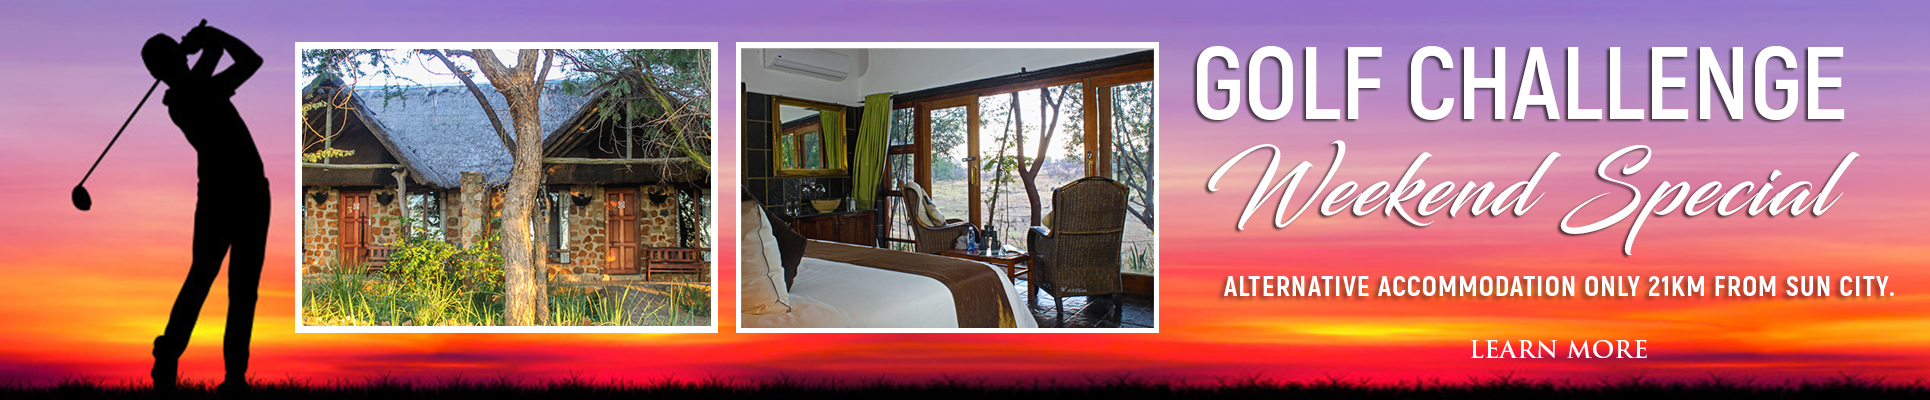 Kedar Heritage Lodge Nedbank Golf Challenge Accommodation Special in Rustenburg Lodges near Sun City